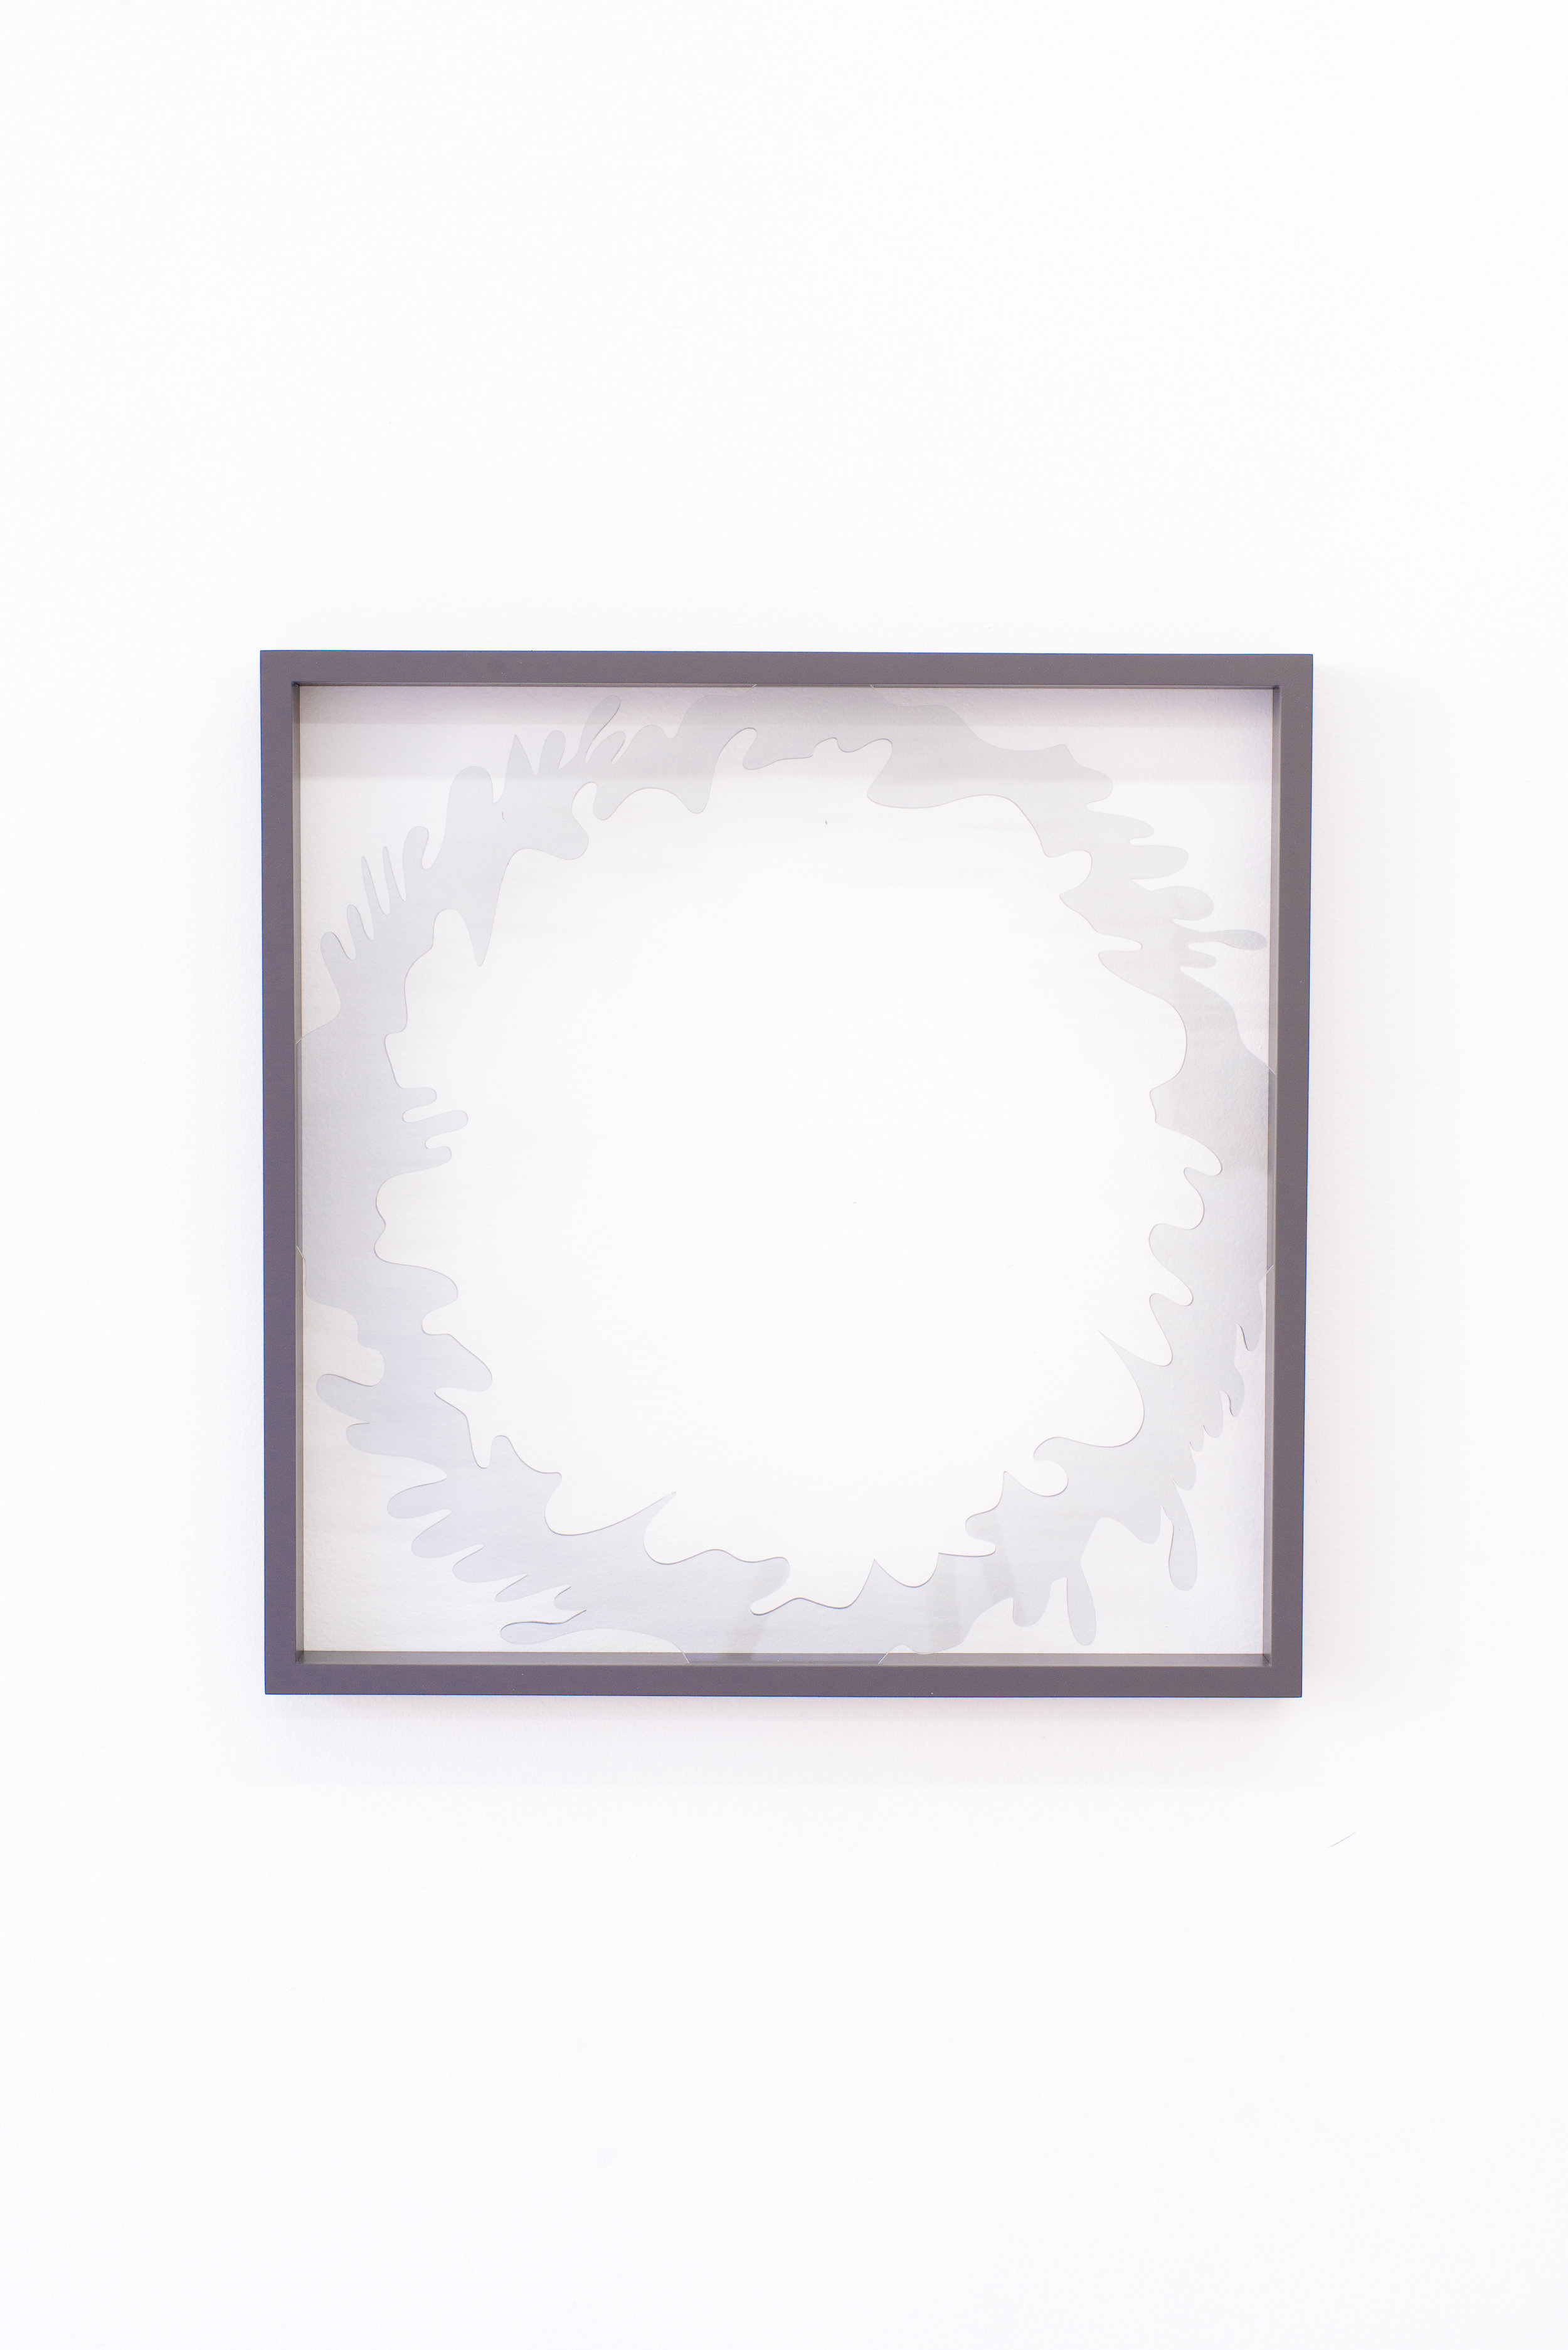 Anna Sagström   (You gave me a ring of glass) And it broke and love ended , 2016 Acrylic glass, painted frame 15.75 x 15.75 inches